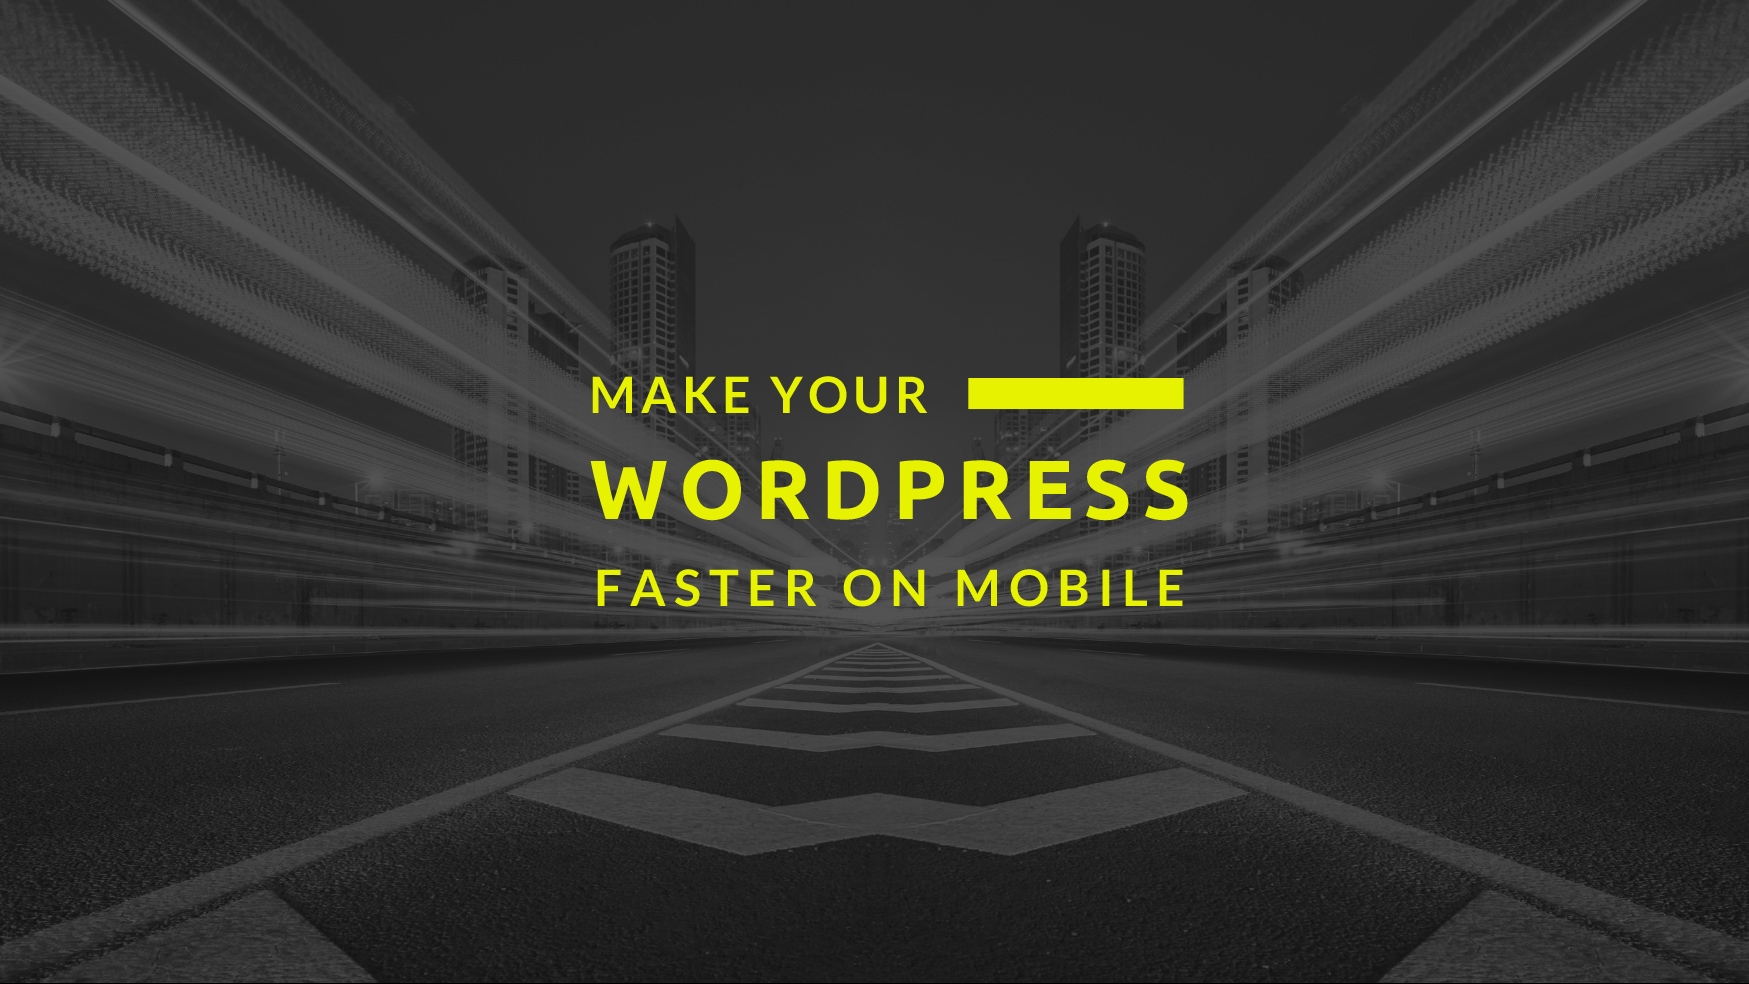 make-wp-faster-on-mobile